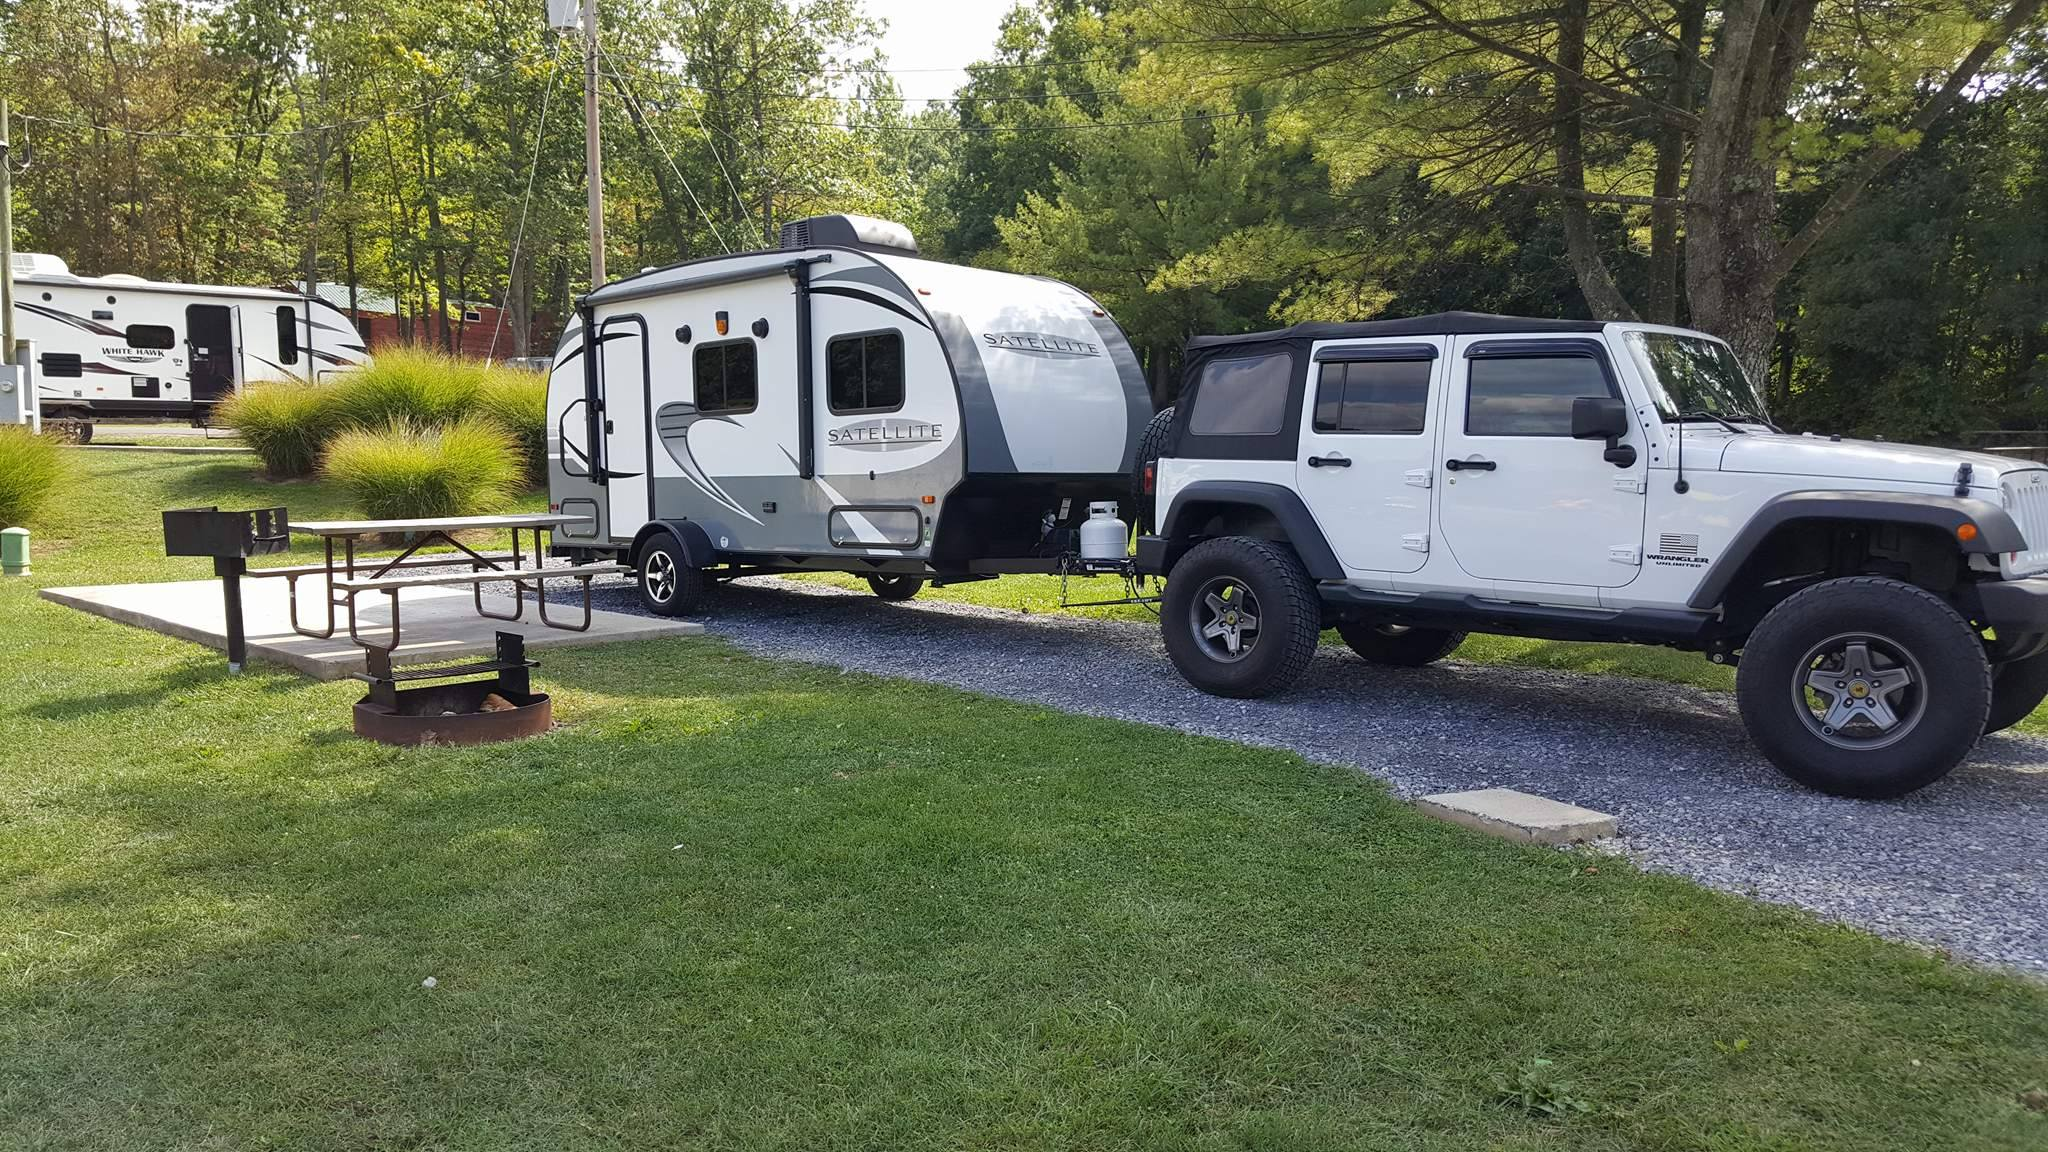 This is my Camper being hauled by my 6 cyclinder Jeep. Starcraft Sattlite 2017